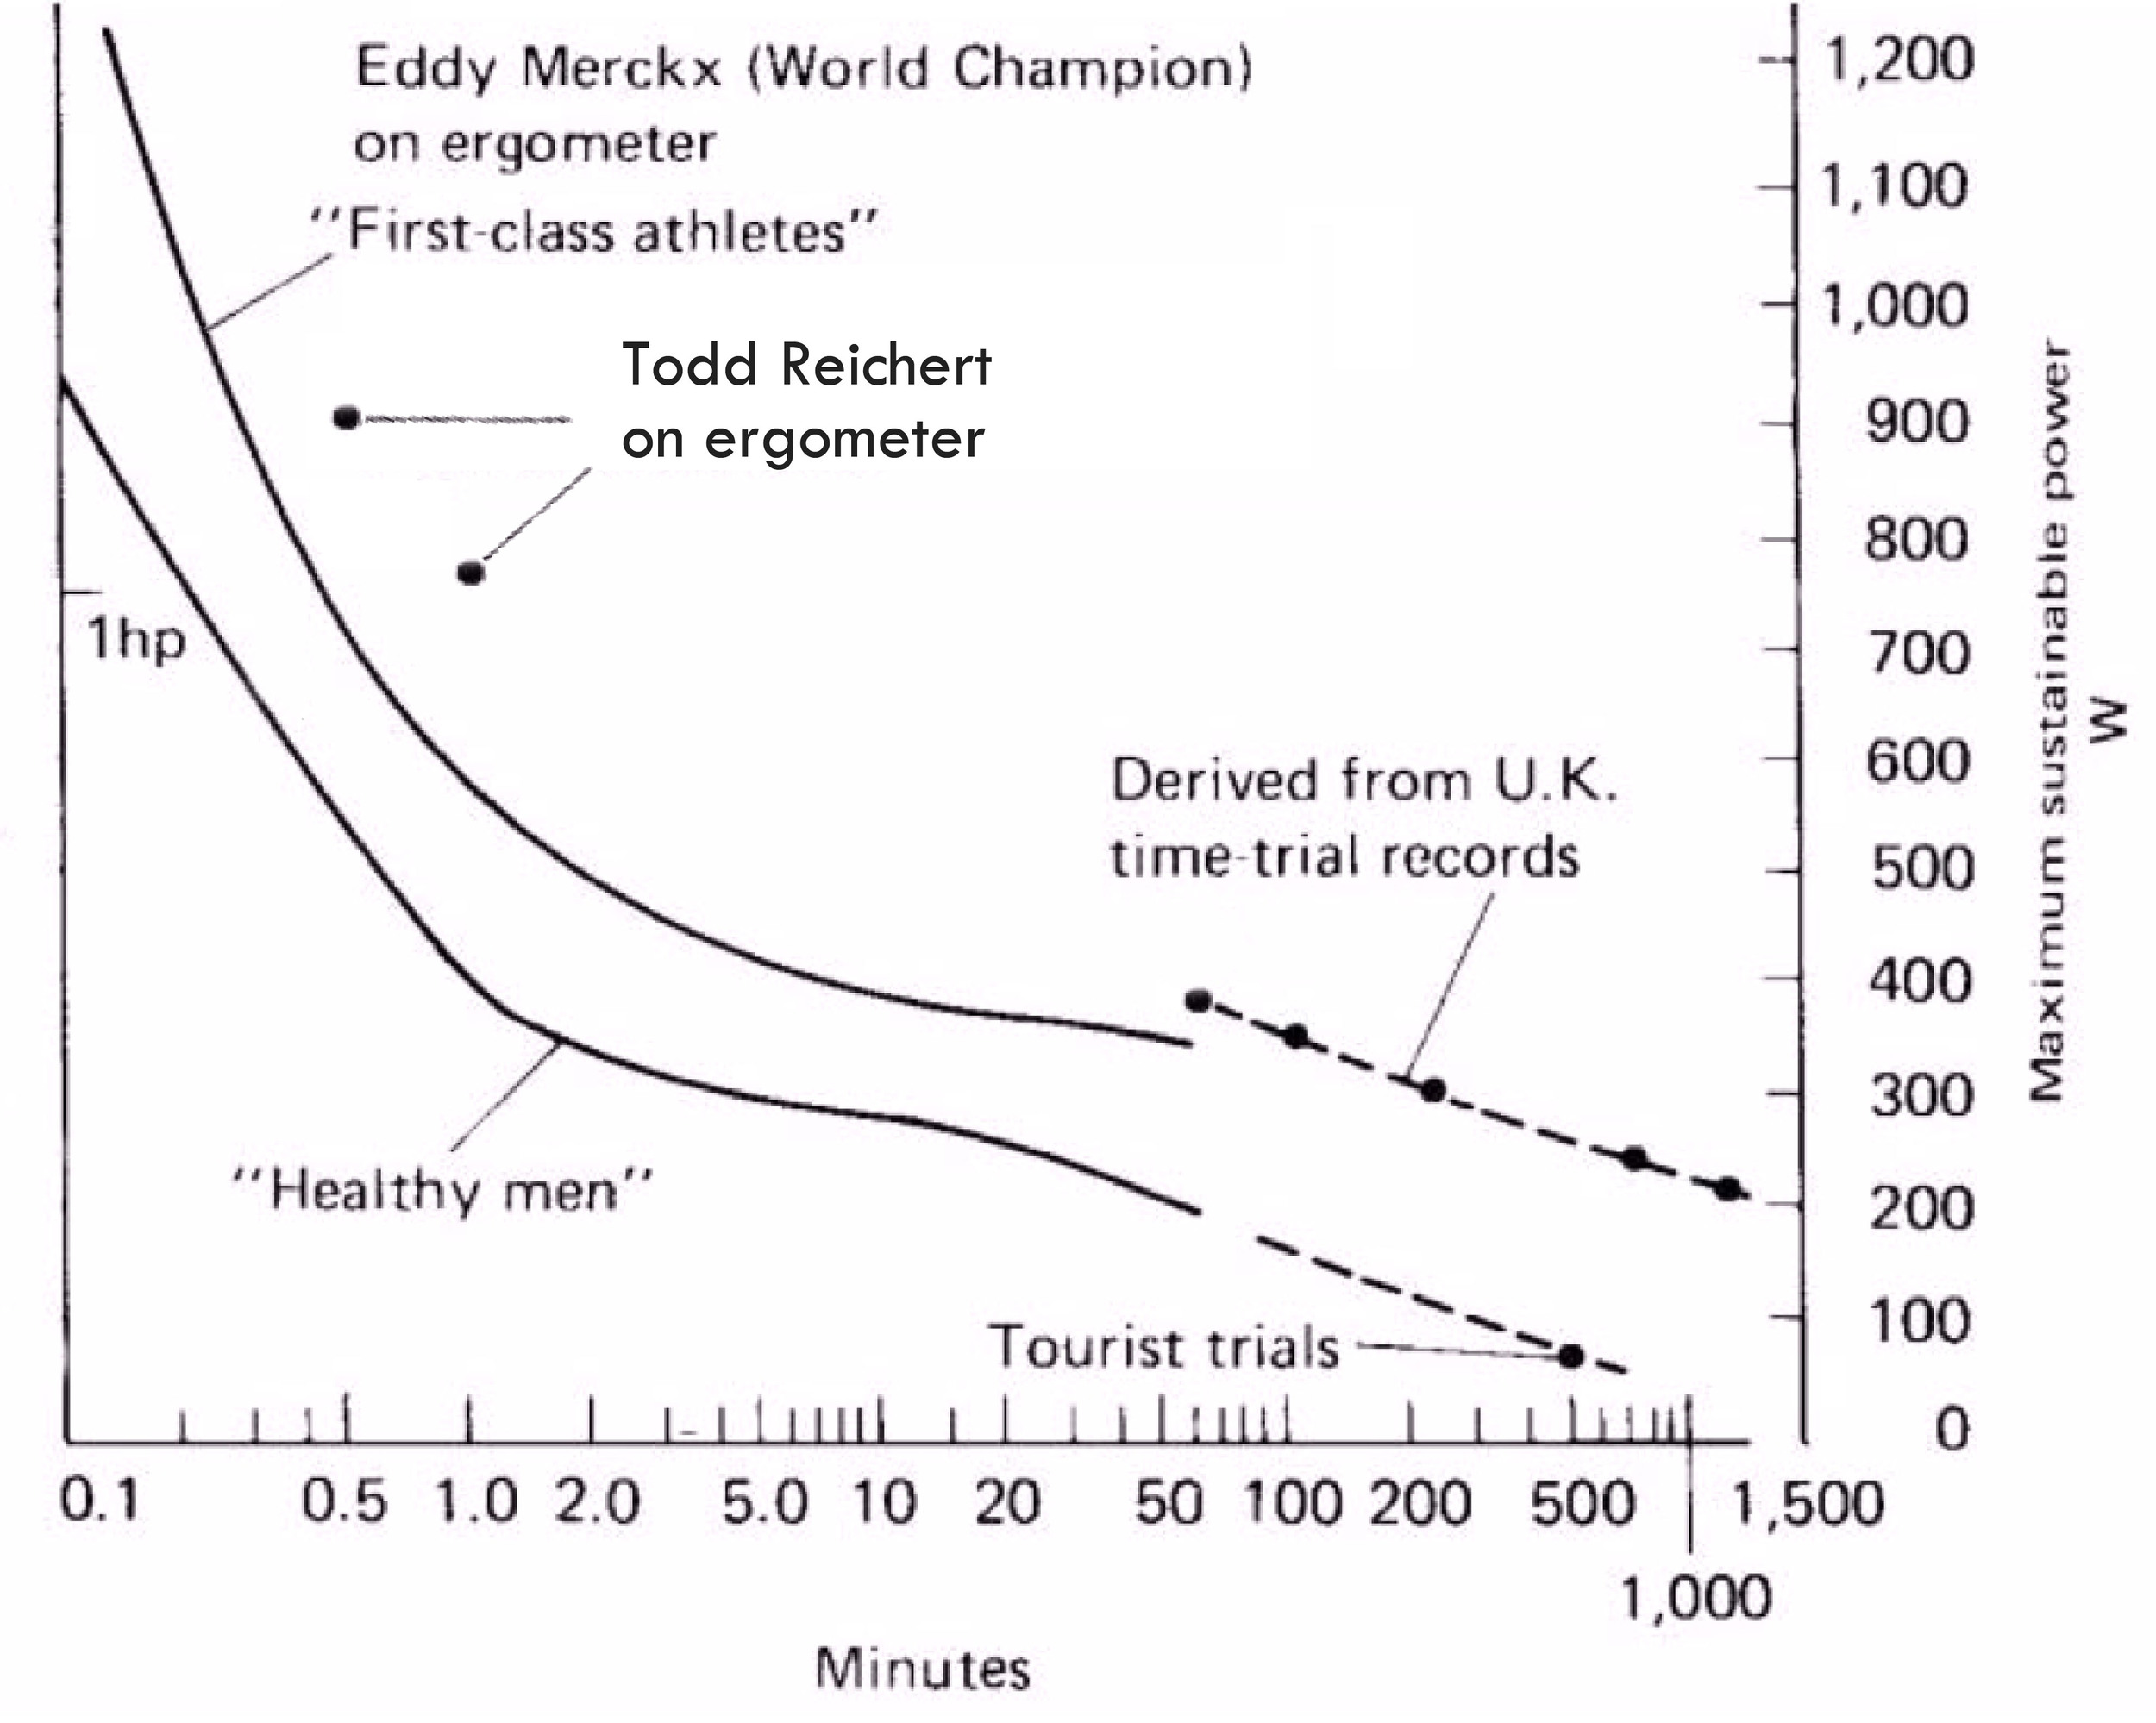 """Maximum human power output (NASA 1964). The """"First-class athletes"""" curve is slightly out of date, and these days many athletes include our pilot Todd Reichert can exceed the curve."""